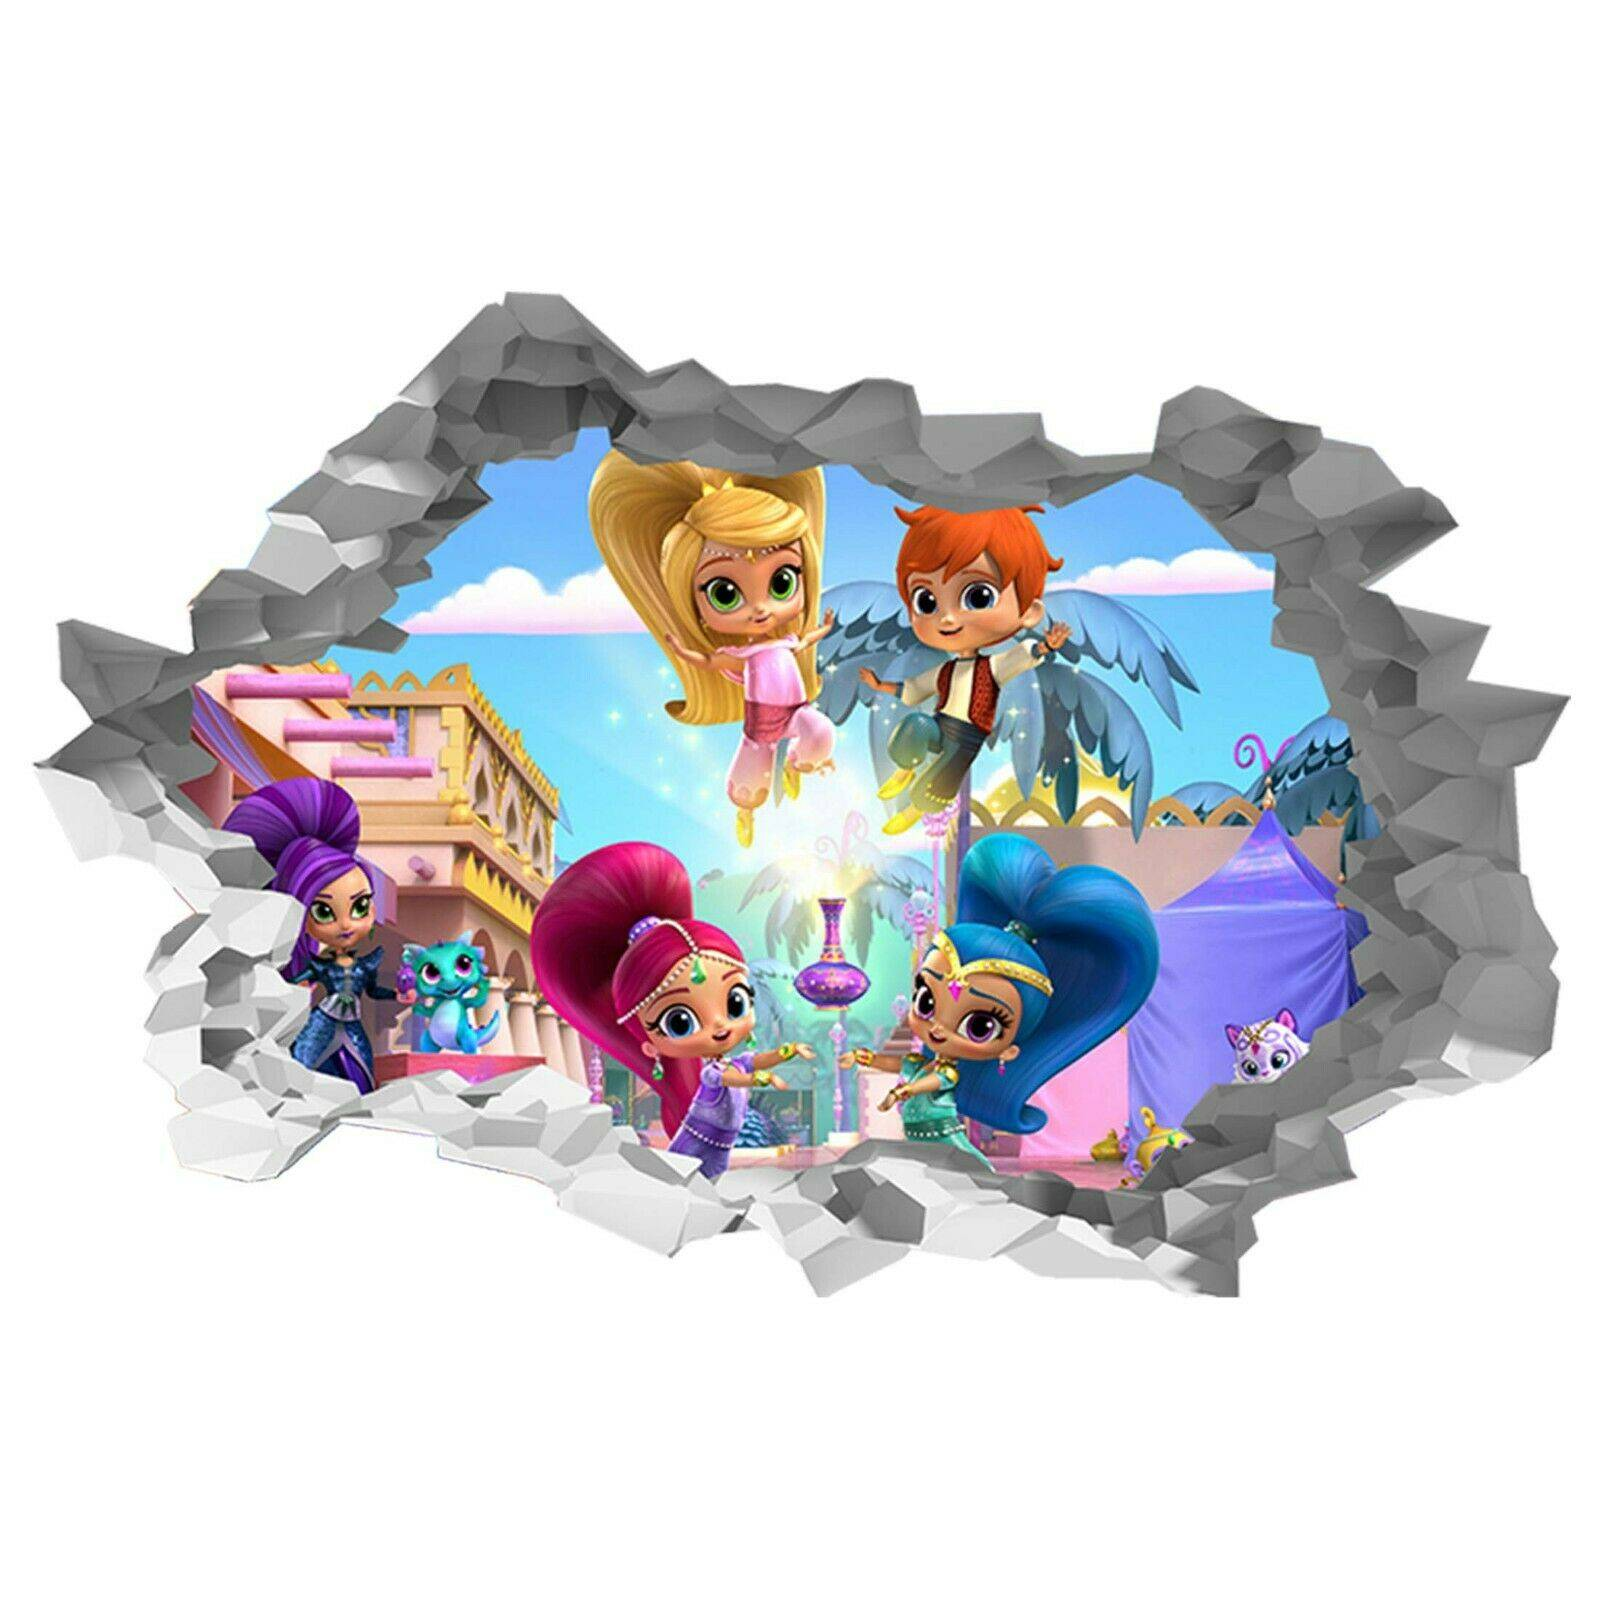 Shimmer and Shine Theme Poster Self Adhesive Wall Sticker Art Decal Mural